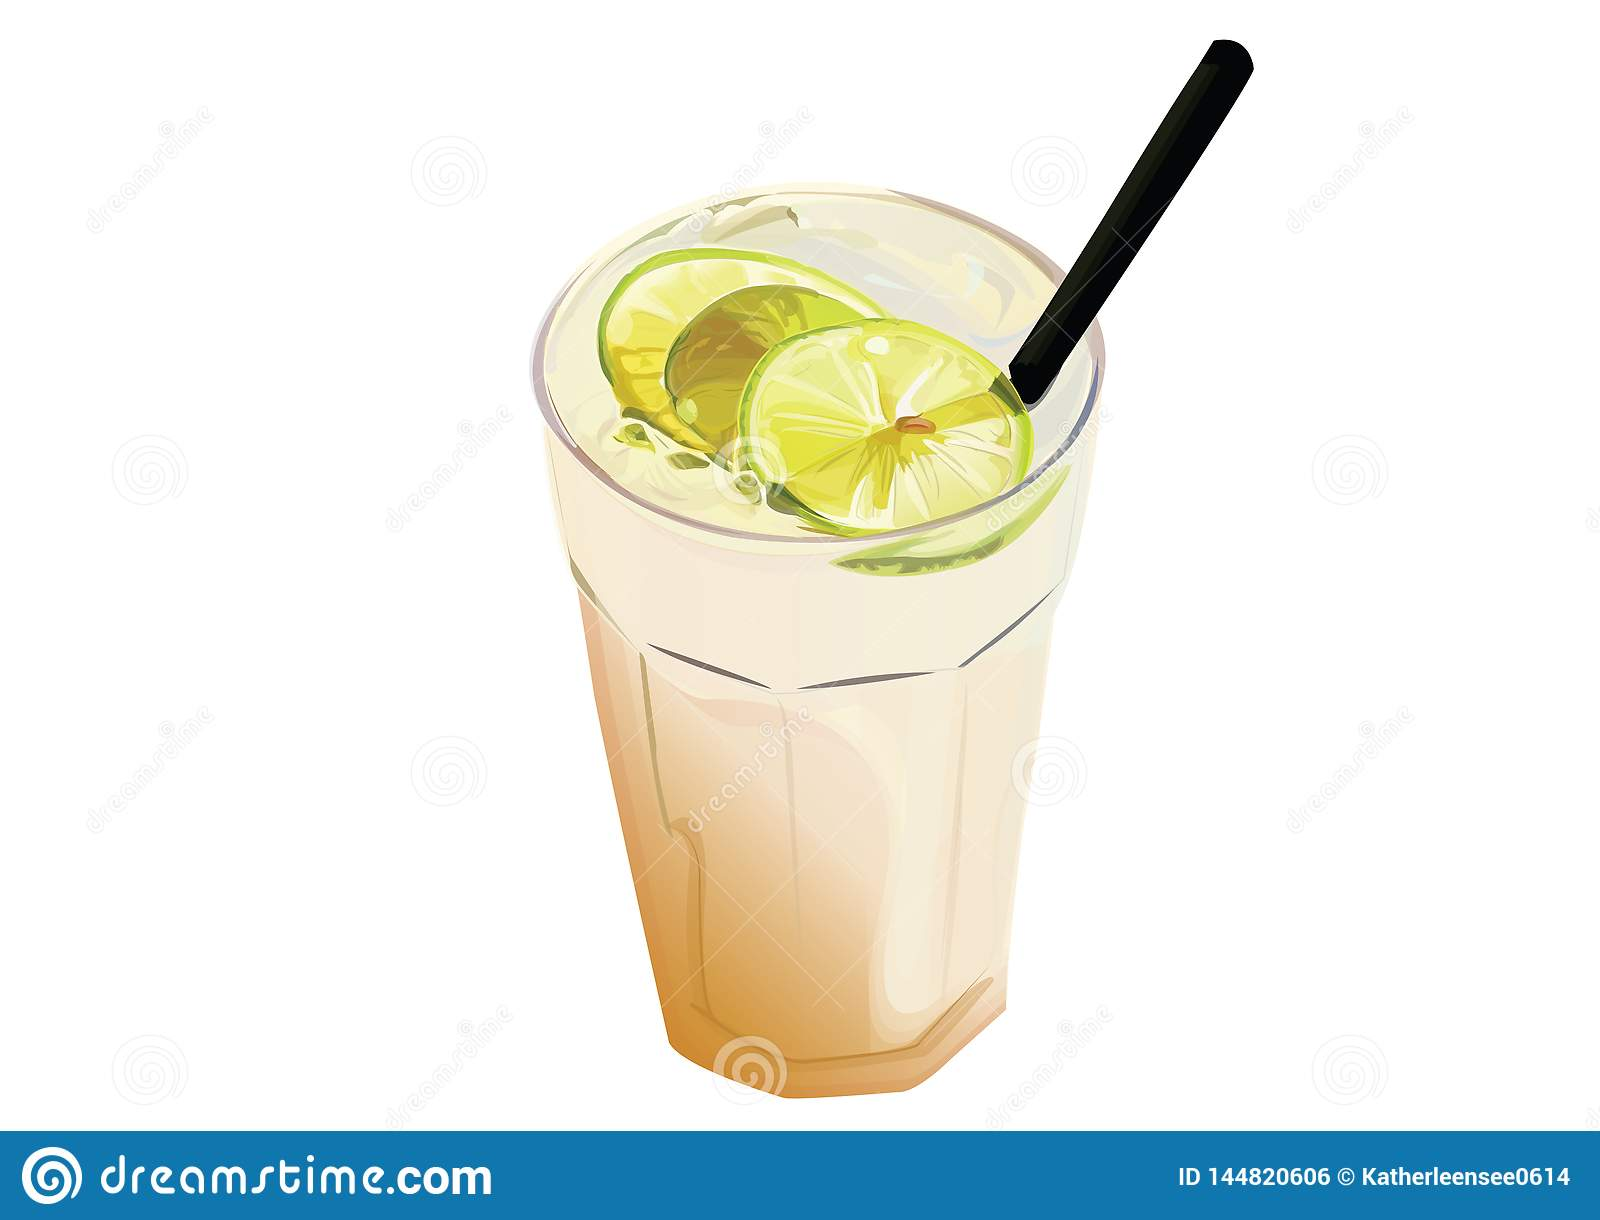 Product Features - A cup of lemon juice